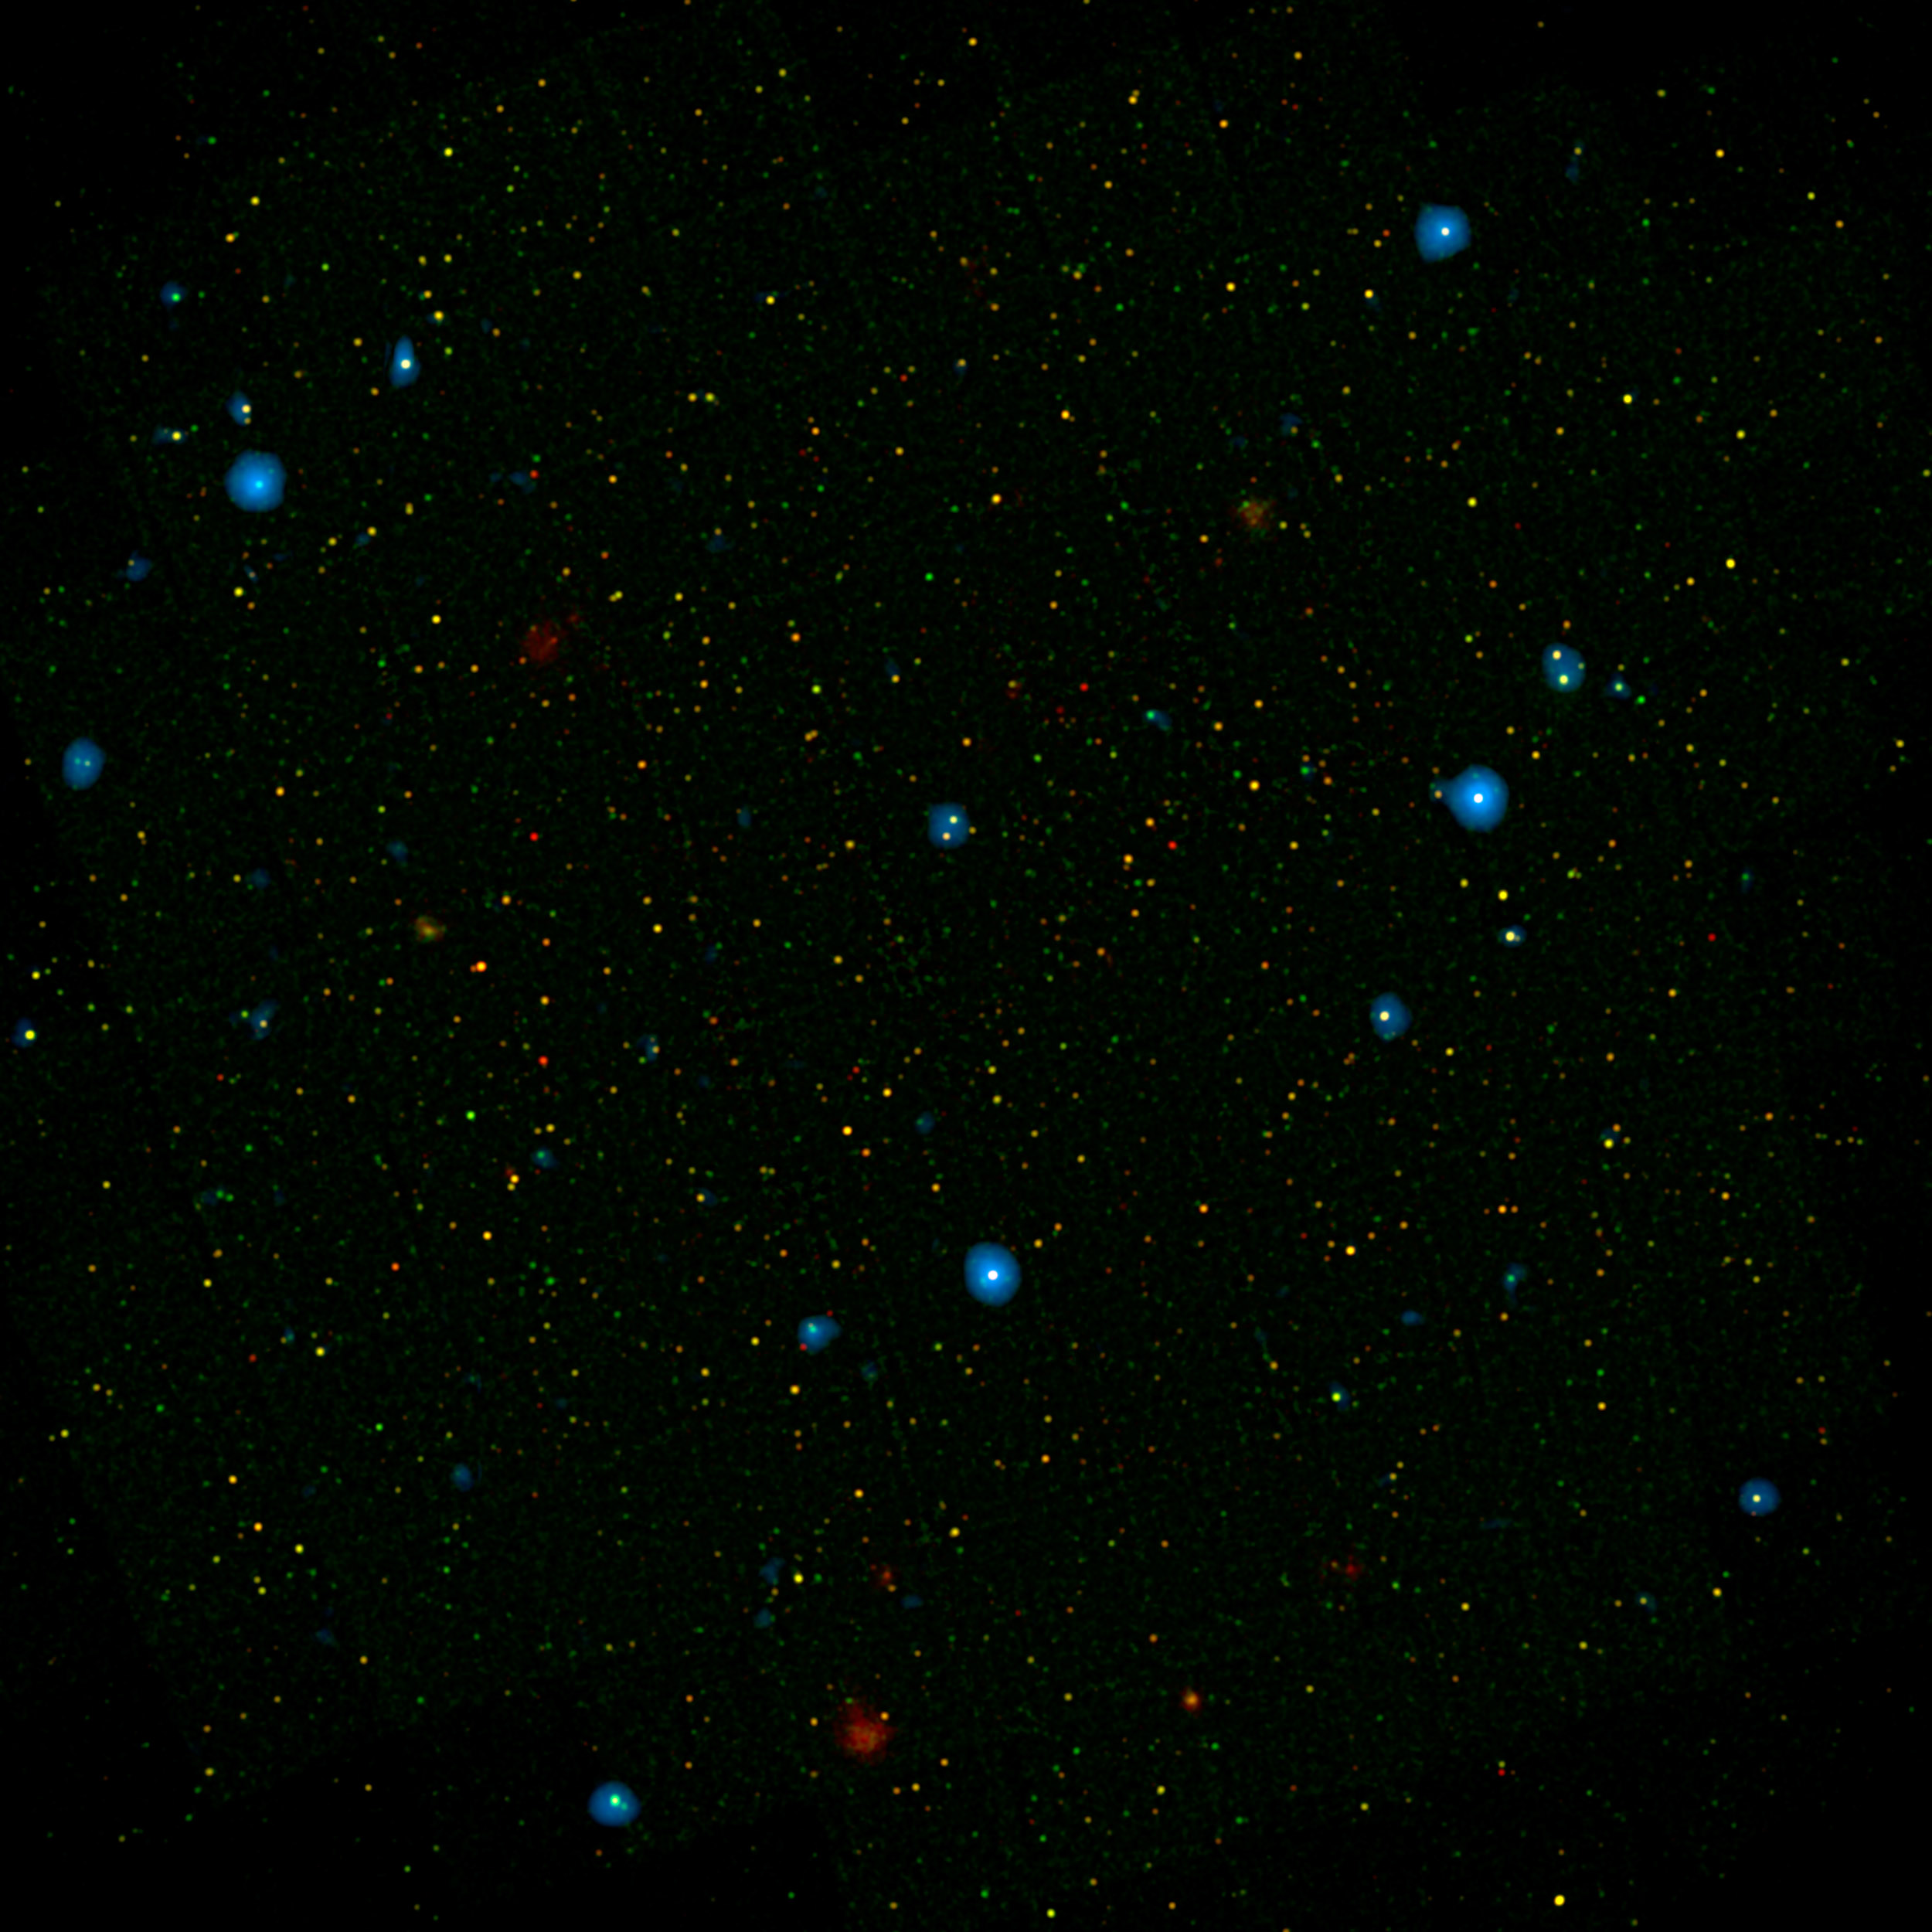 black holes monsters in space nasa the blue dots in this field of galaxies known as the cosmos field show galaxies that contain supermassive black holes emitting high energy x rays